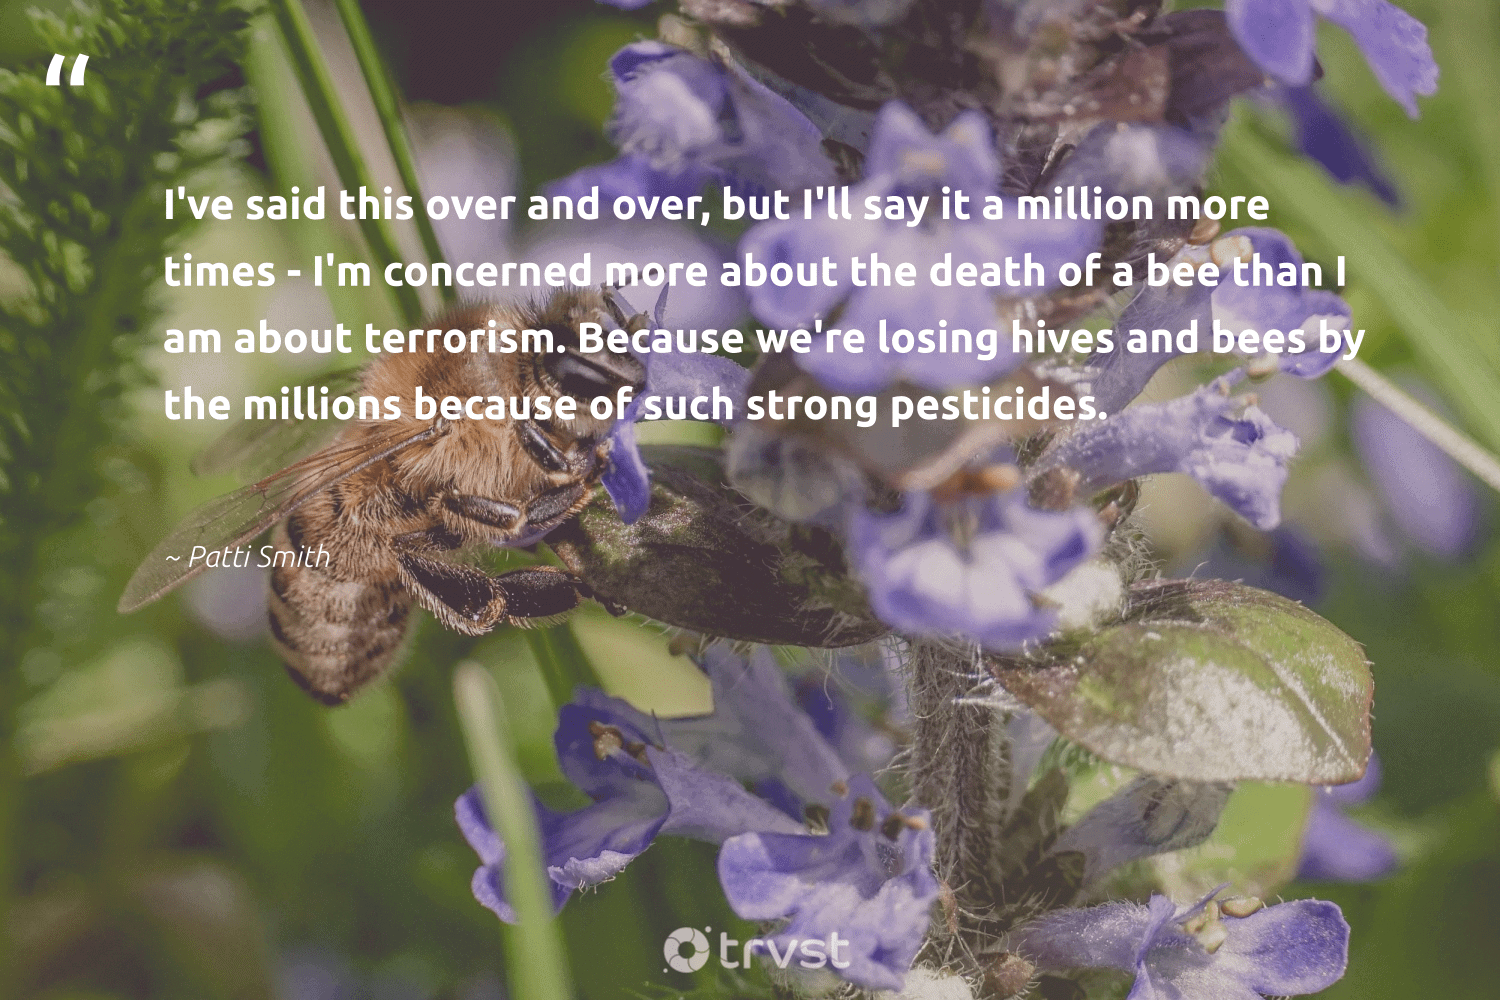 """""""I've said this over and over, but I'll say it a million more times - I'm concerned more about the death of a bee than I am about terrorism. Because we're losing hives and bees by the millions because of such strong pesticides.""""  - Patti Smith #trvst #quotes #bee #bees #beekeeping #beekeeper #apiary #natural #changetheworld #beekeepers #beeswax #honeybee"""